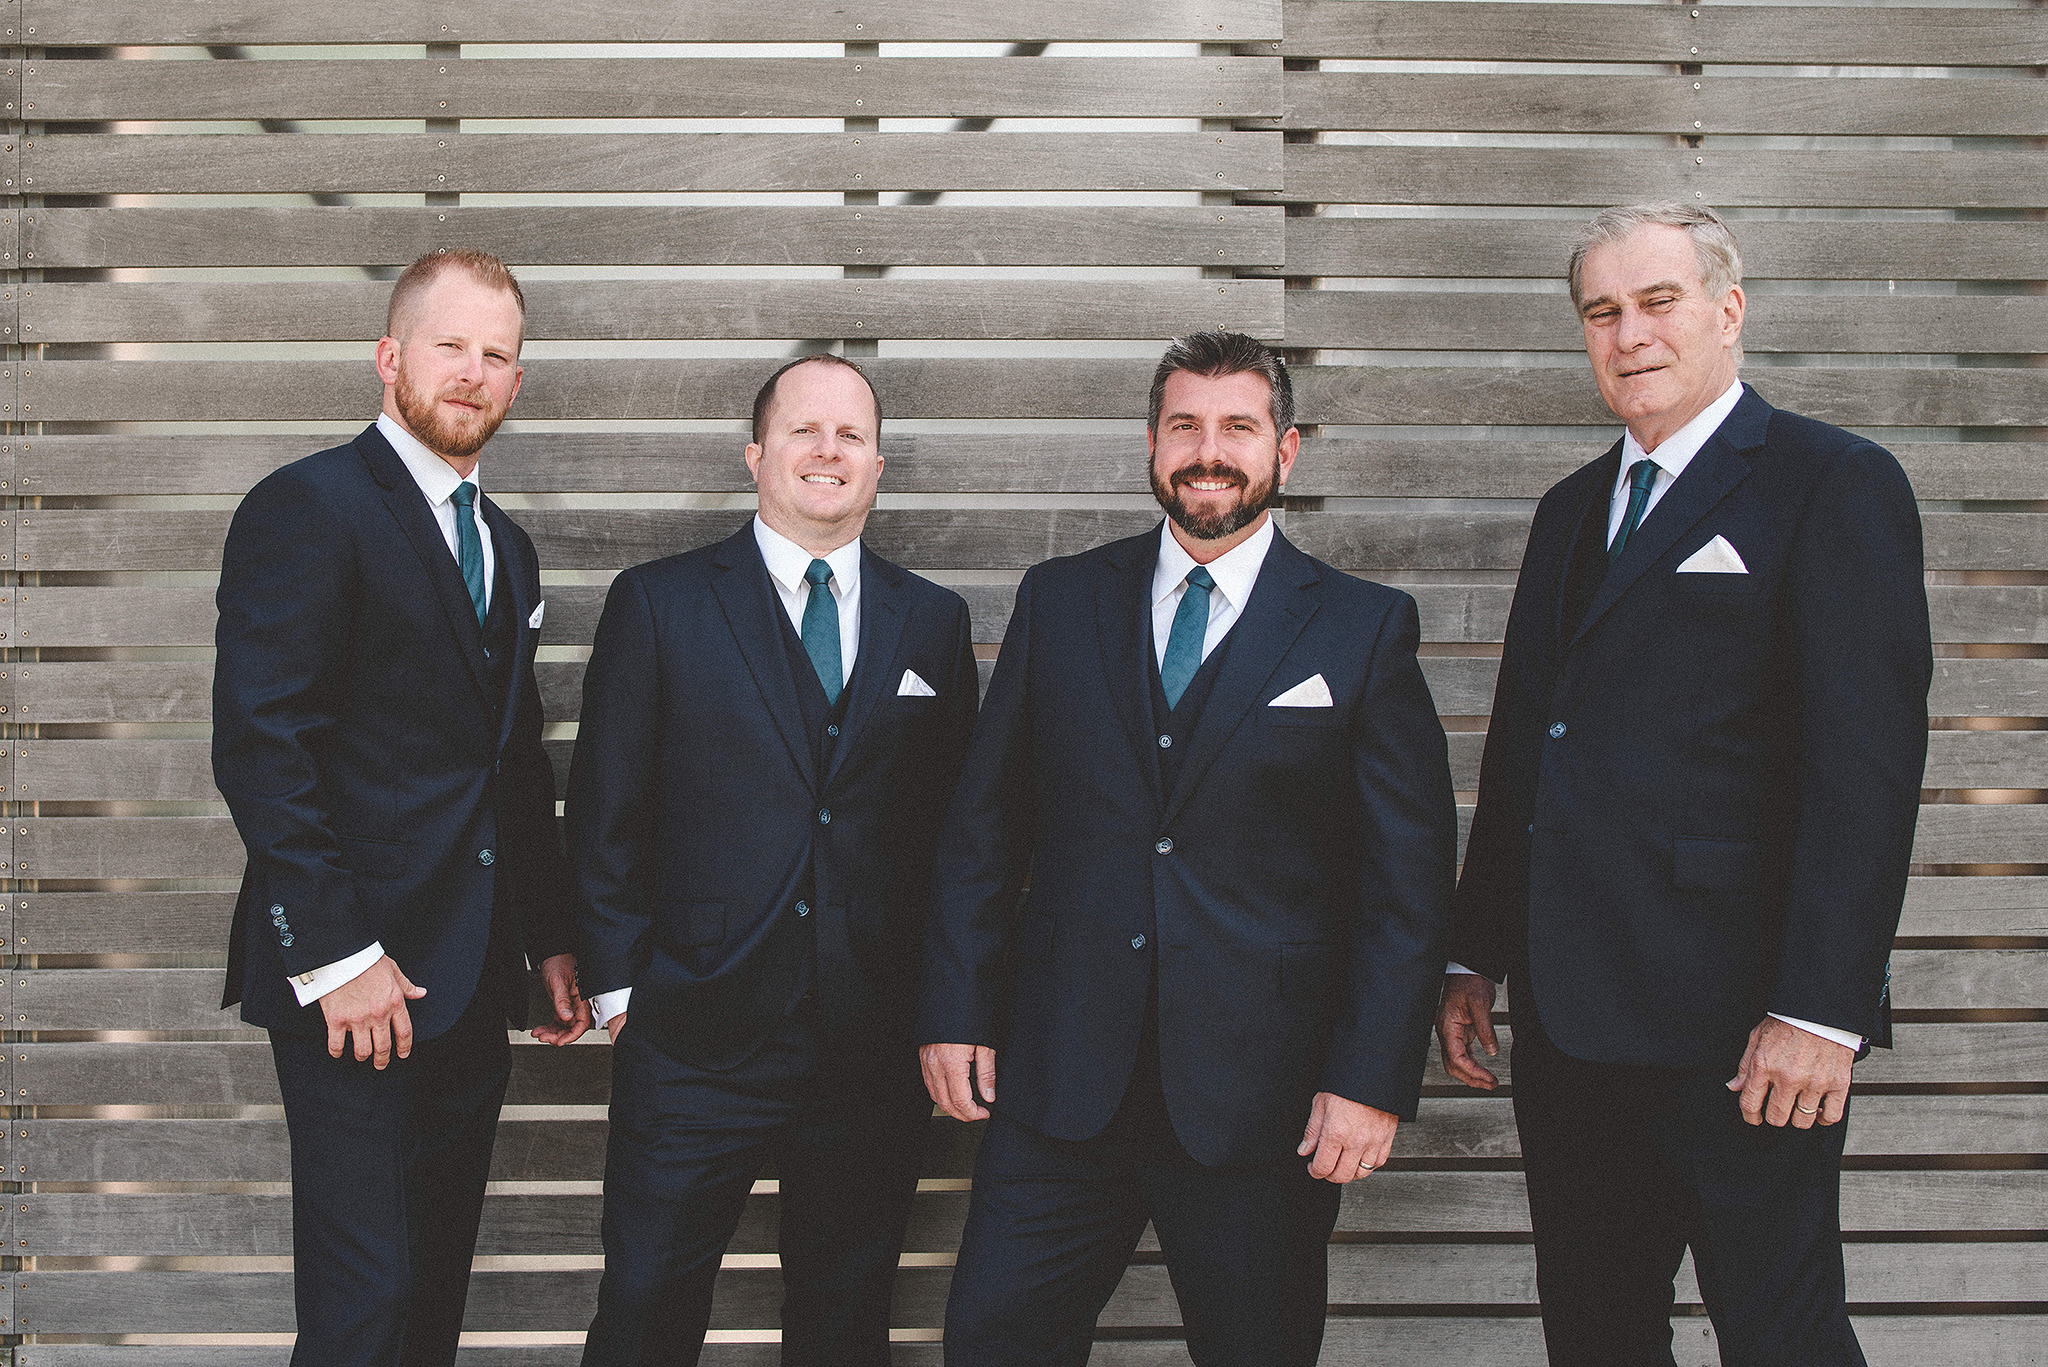 groom with groomsmen | the ivy house milwaukee wedding photographer | chrissy deming photography